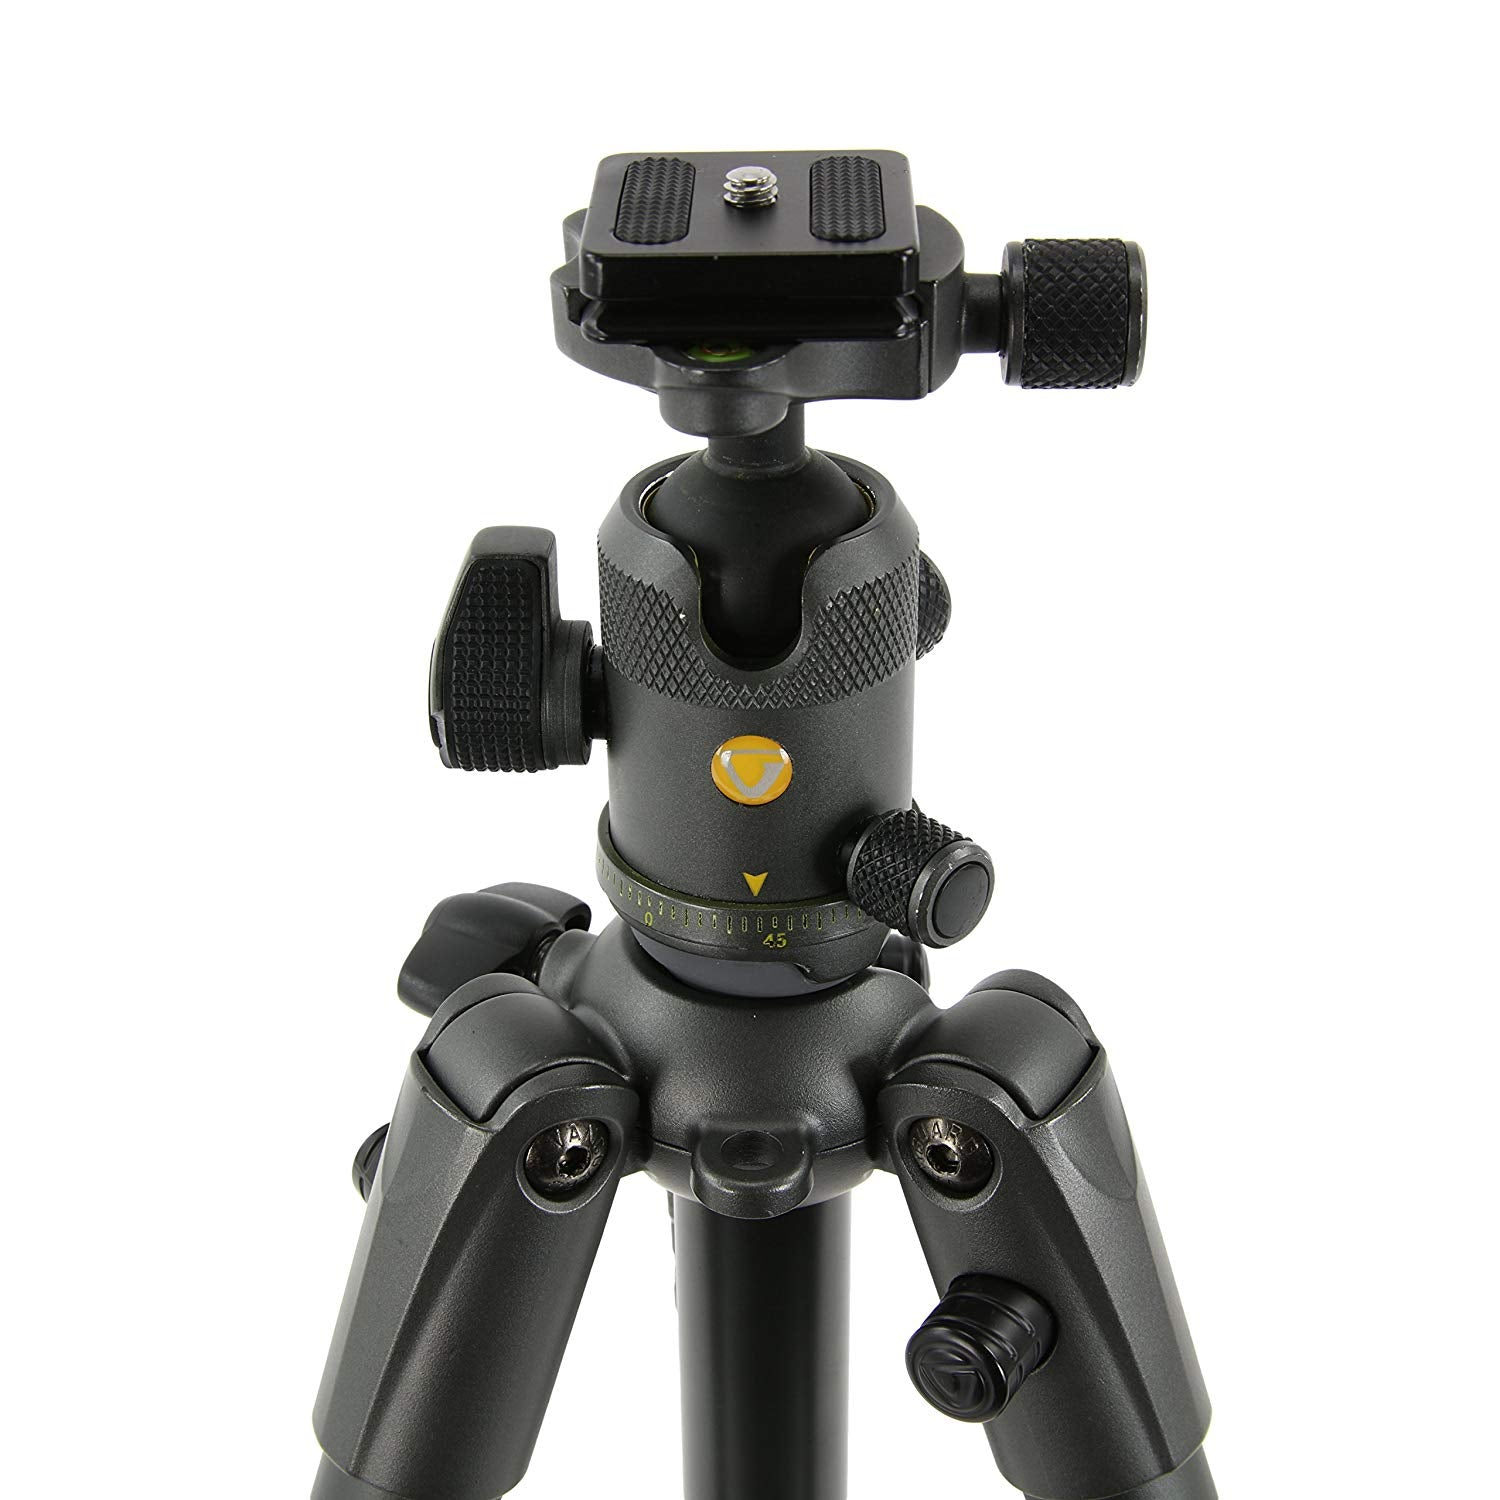 Vanguard VEO 2 265AB Aluminum Tripod with Ball Head